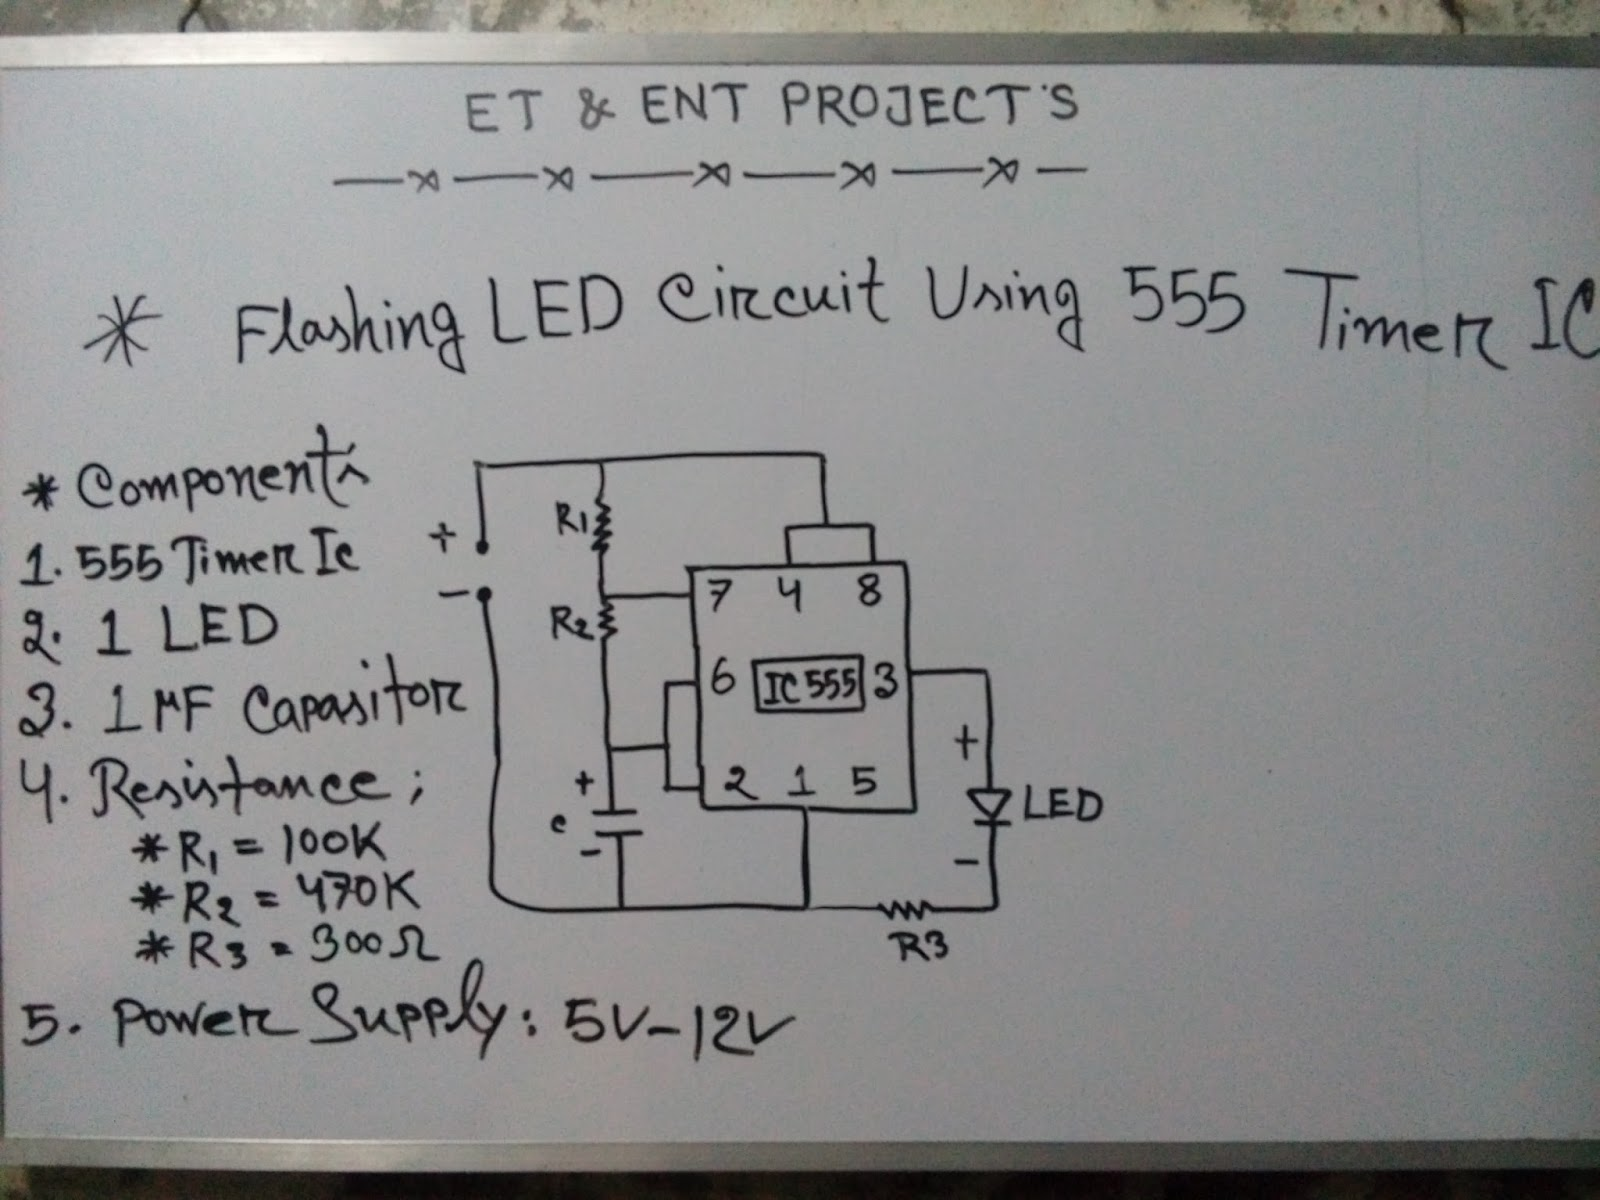 Proximity Sensor Work Et Ent Projects Simple Musical Door Bell Circuit Electronic Flashing Led Using 555 Timer Ic